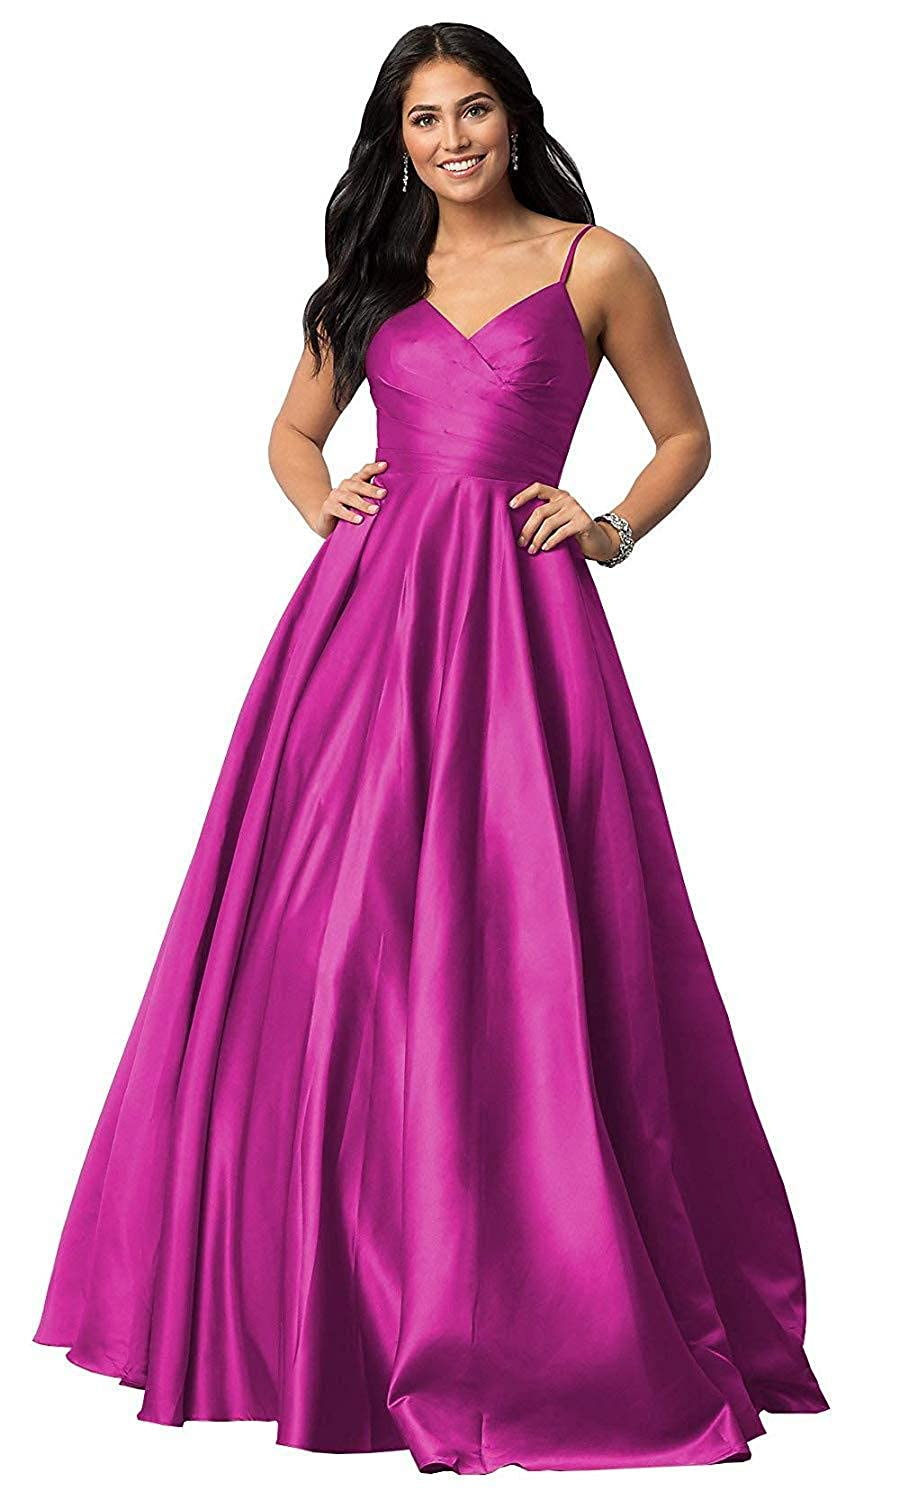 Fuchsia TTdamai Prom Dresses V Neck Satin Spaghetti Strap A Line Formal Evening Gowns with Pockets